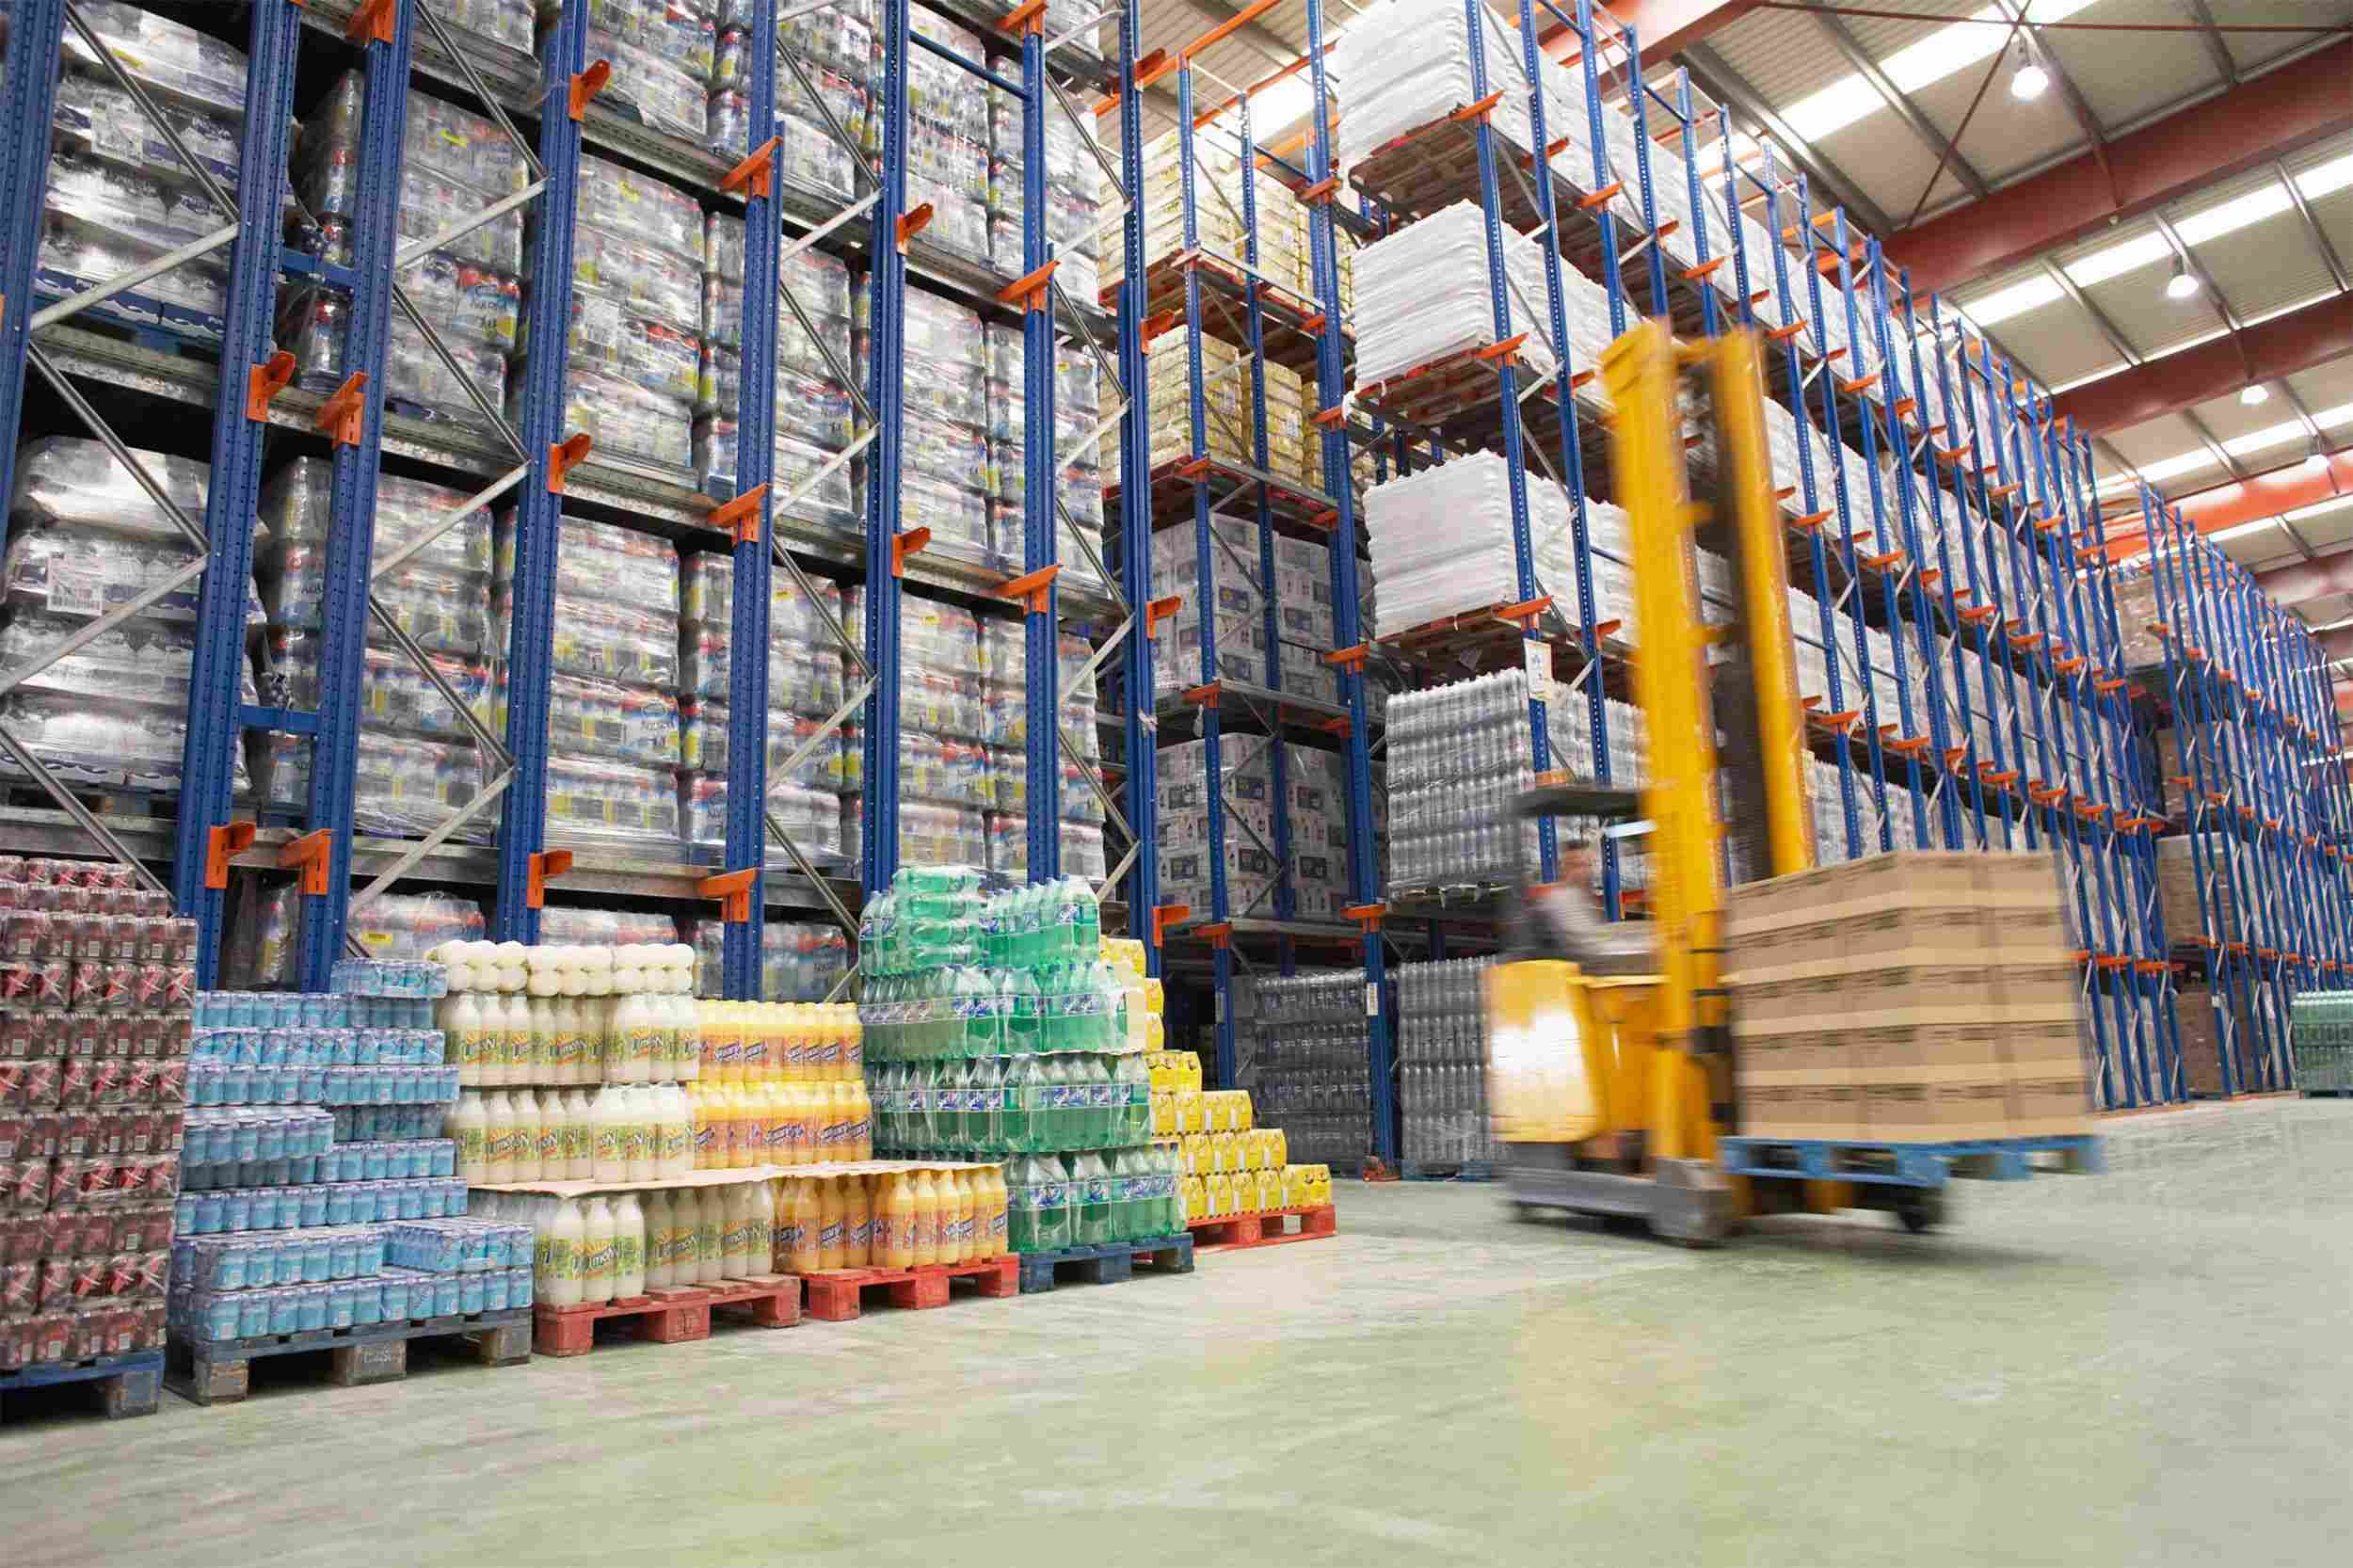 http://www.mm-aerojob.ro/wp-content/uploads/2015/09/Warehouse-and-lifter.jpg